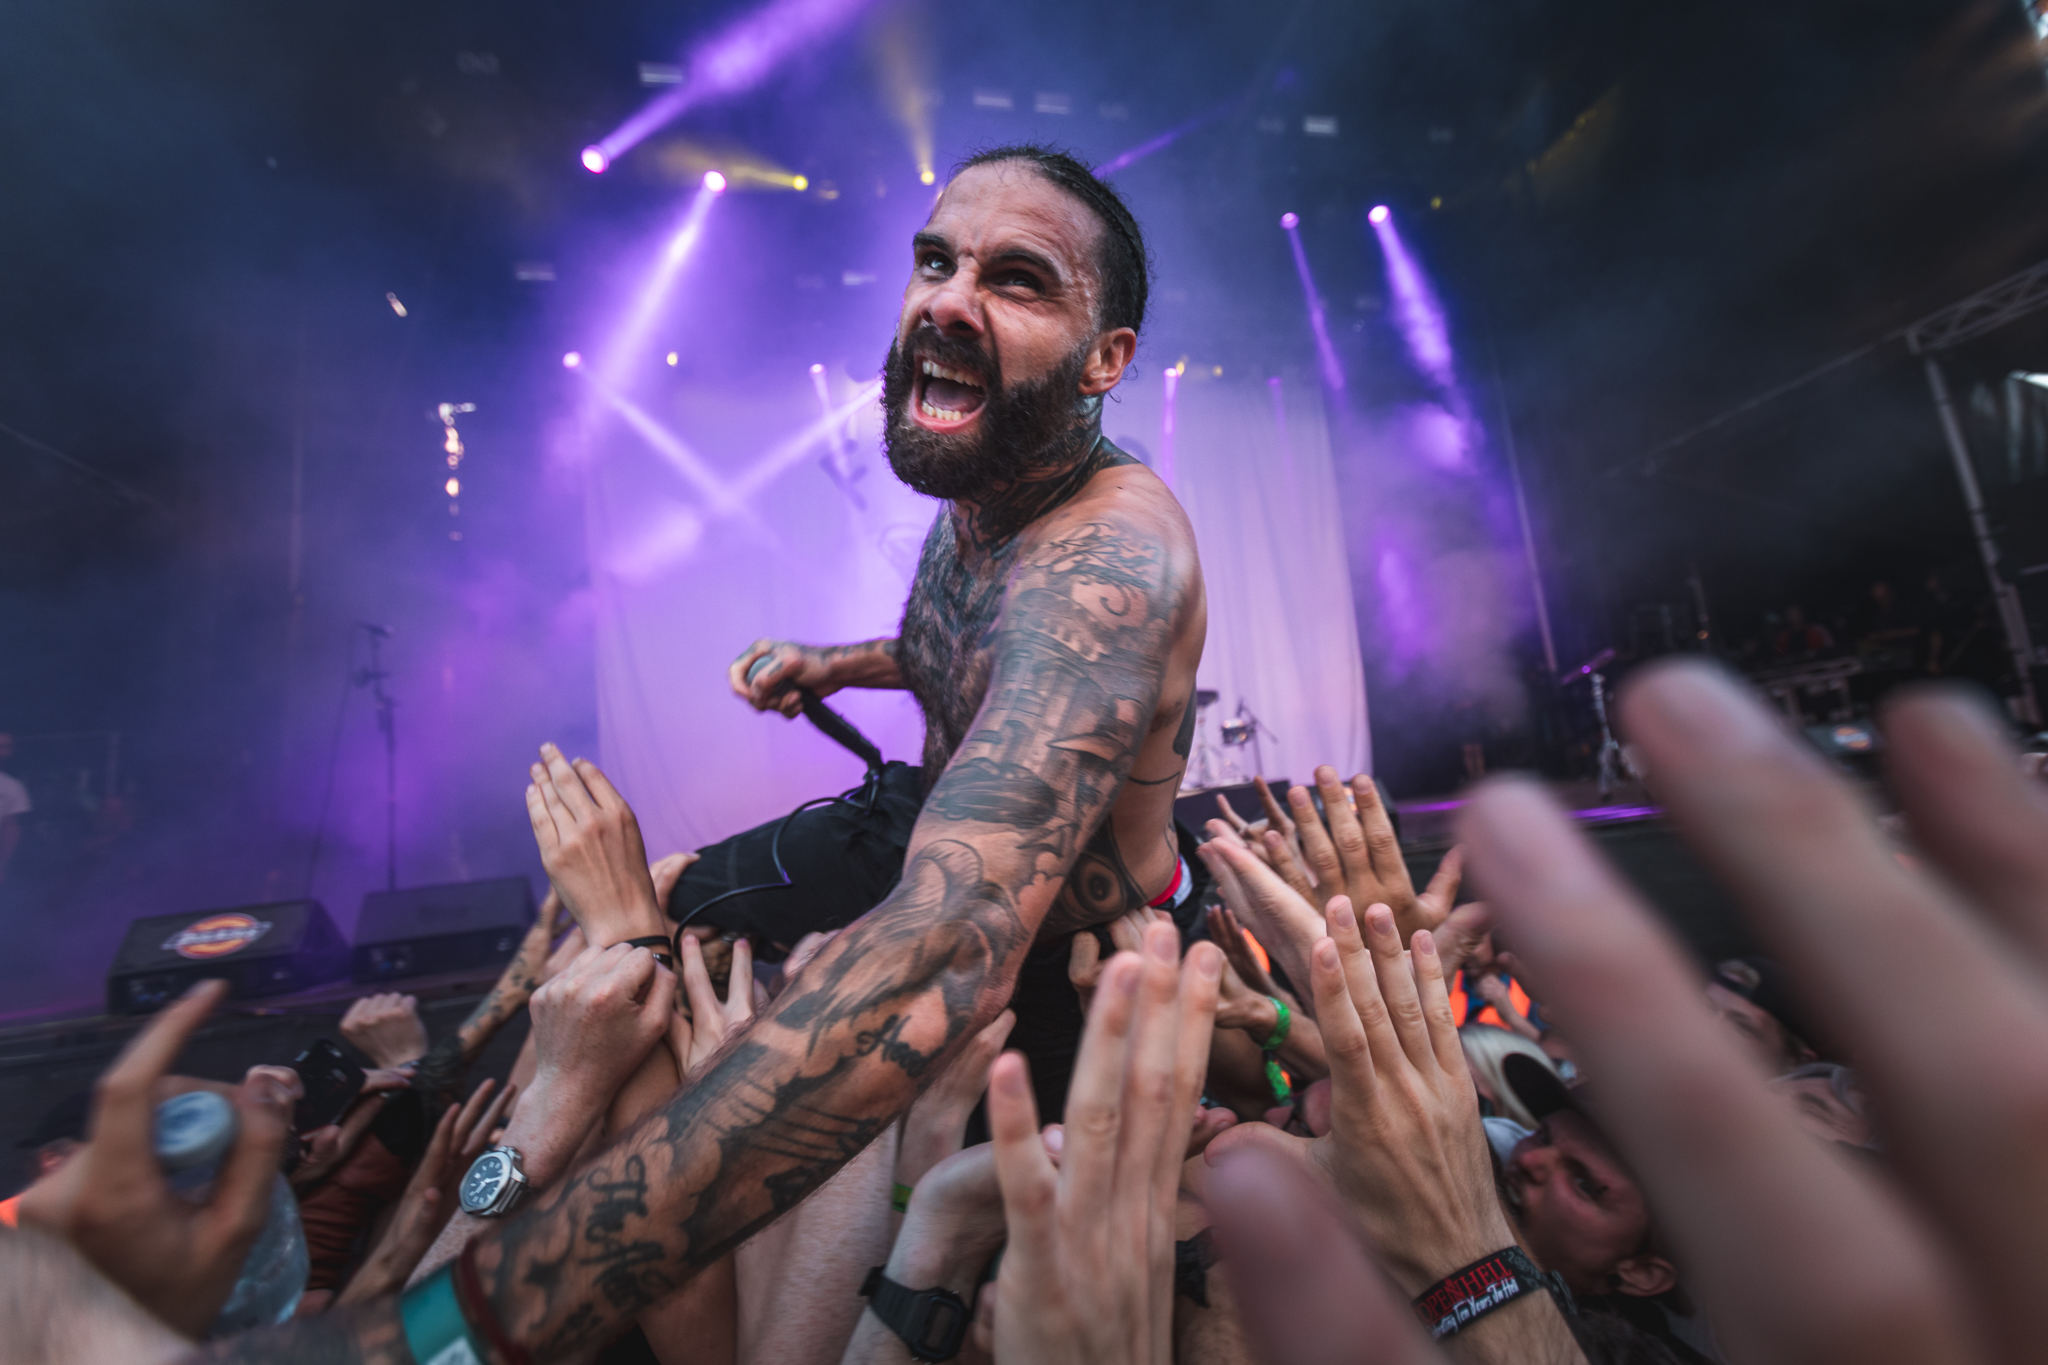 Fever 333 at Copenhell